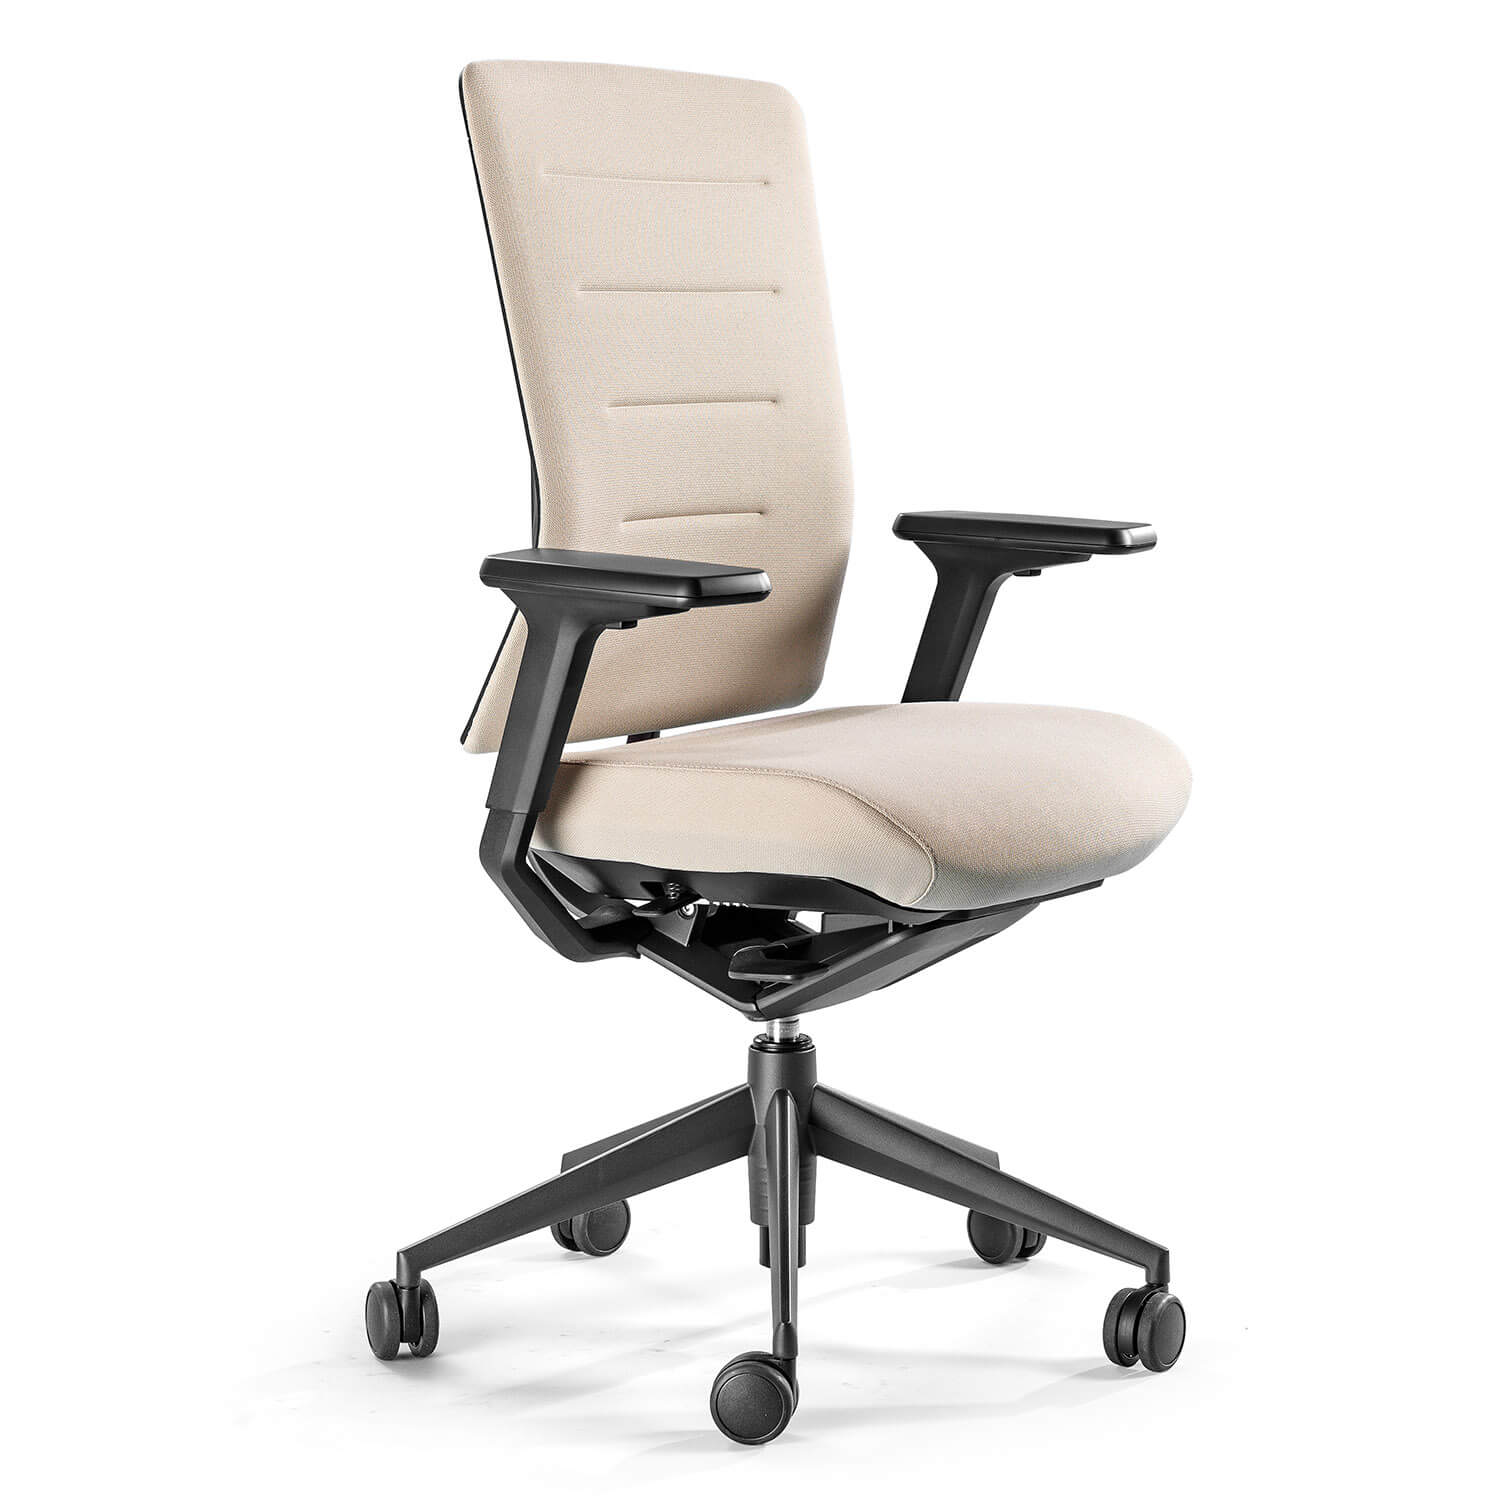 Business Chair Office Furniture Australia Commercial Interiors